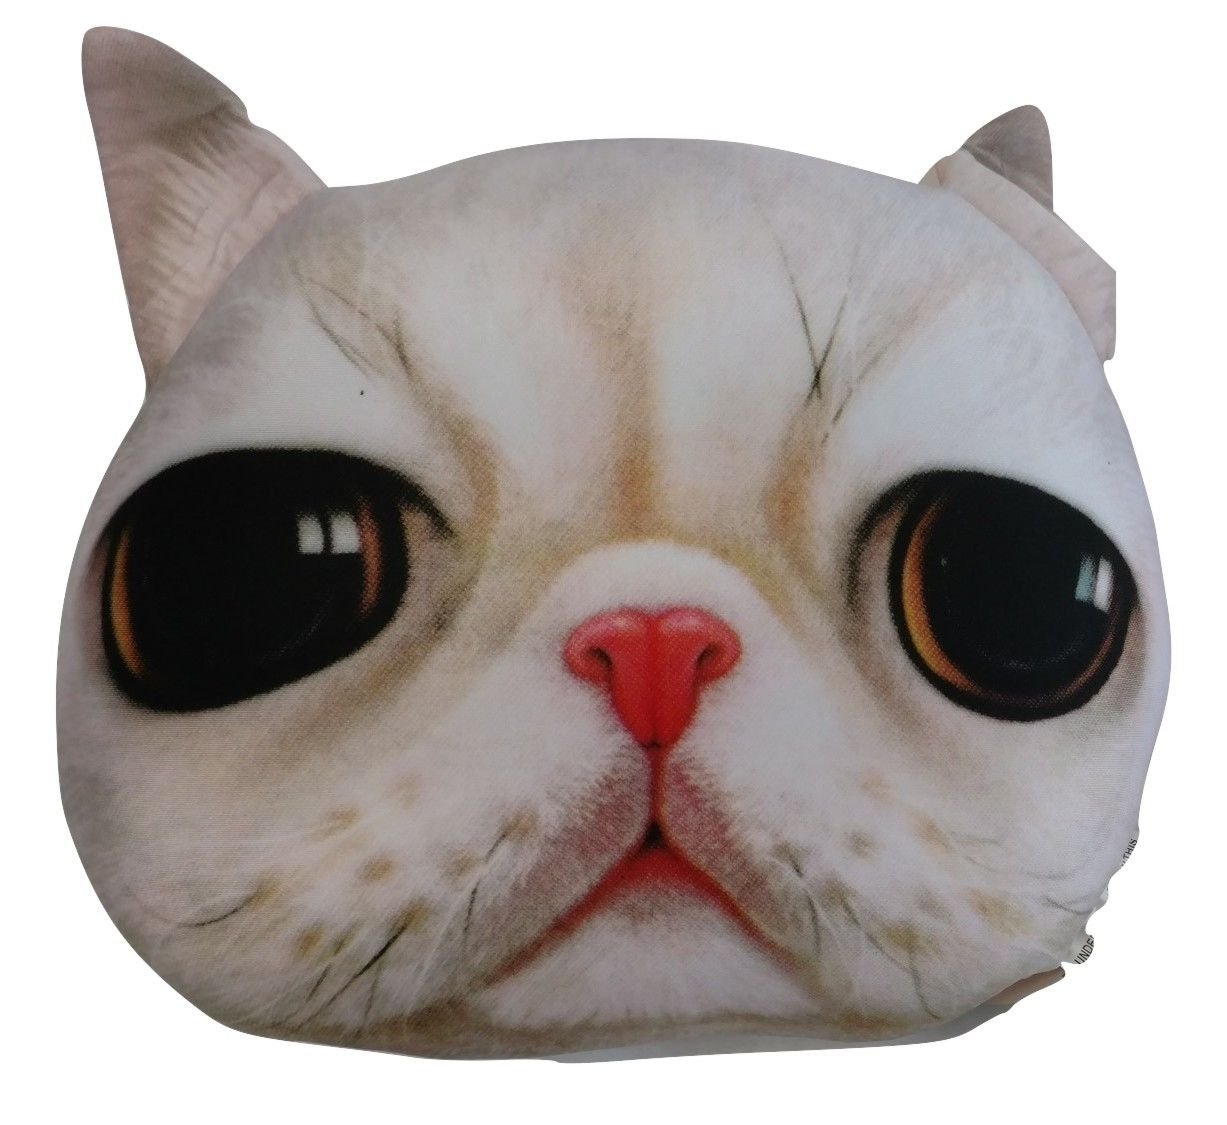 Tache Cute Cuddly Squishy White Persian Kitty Cat Microbead Realistic Decorative Animal Pet Lover Toss Cushion Throw Pillow